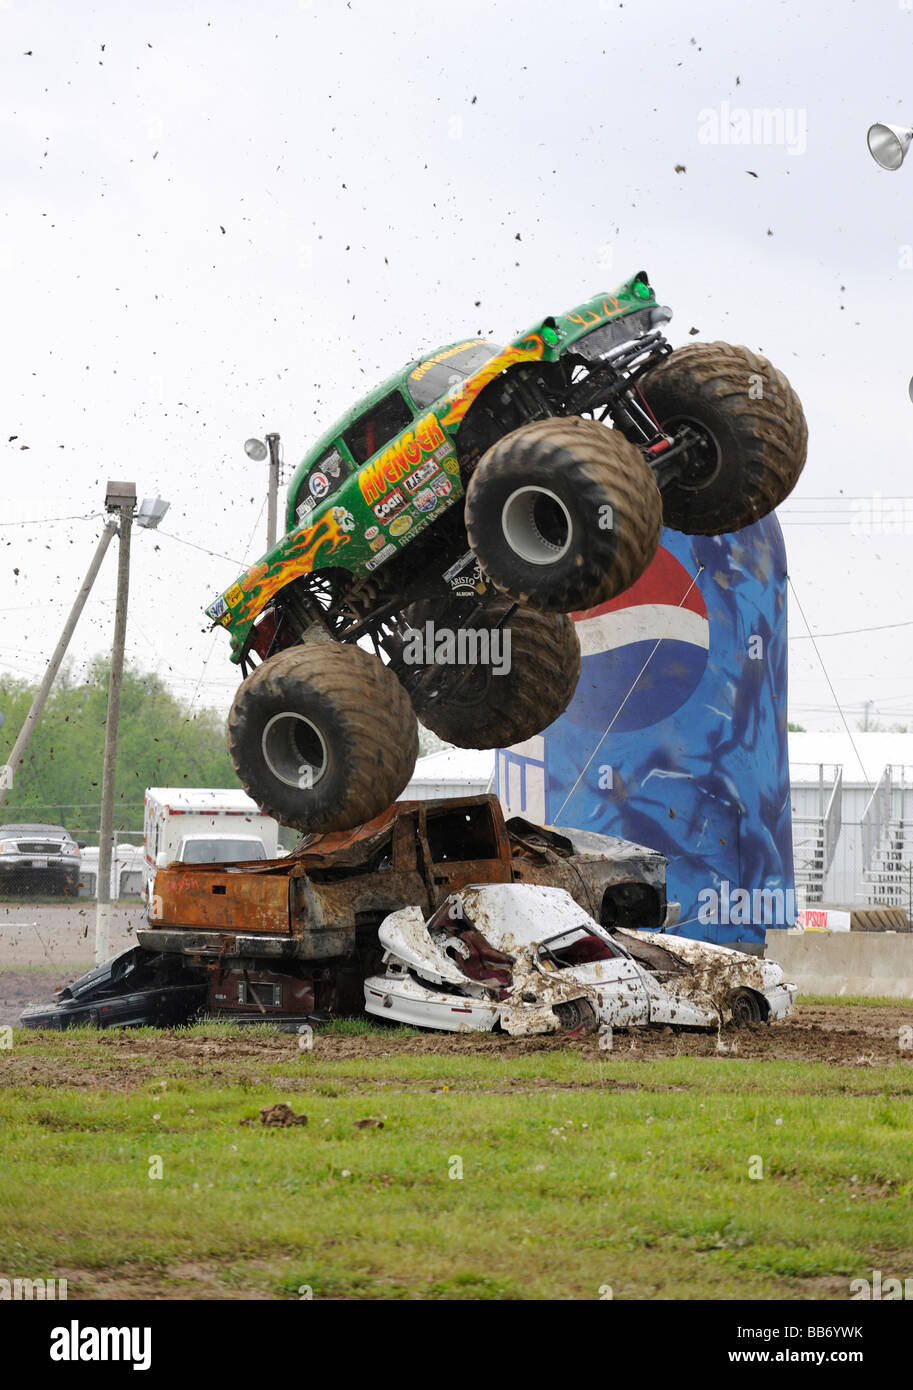 Avenger monster truck in freestyle competition at 4x4 Off-Road Jamboree Monster Truck Show - Stock Image